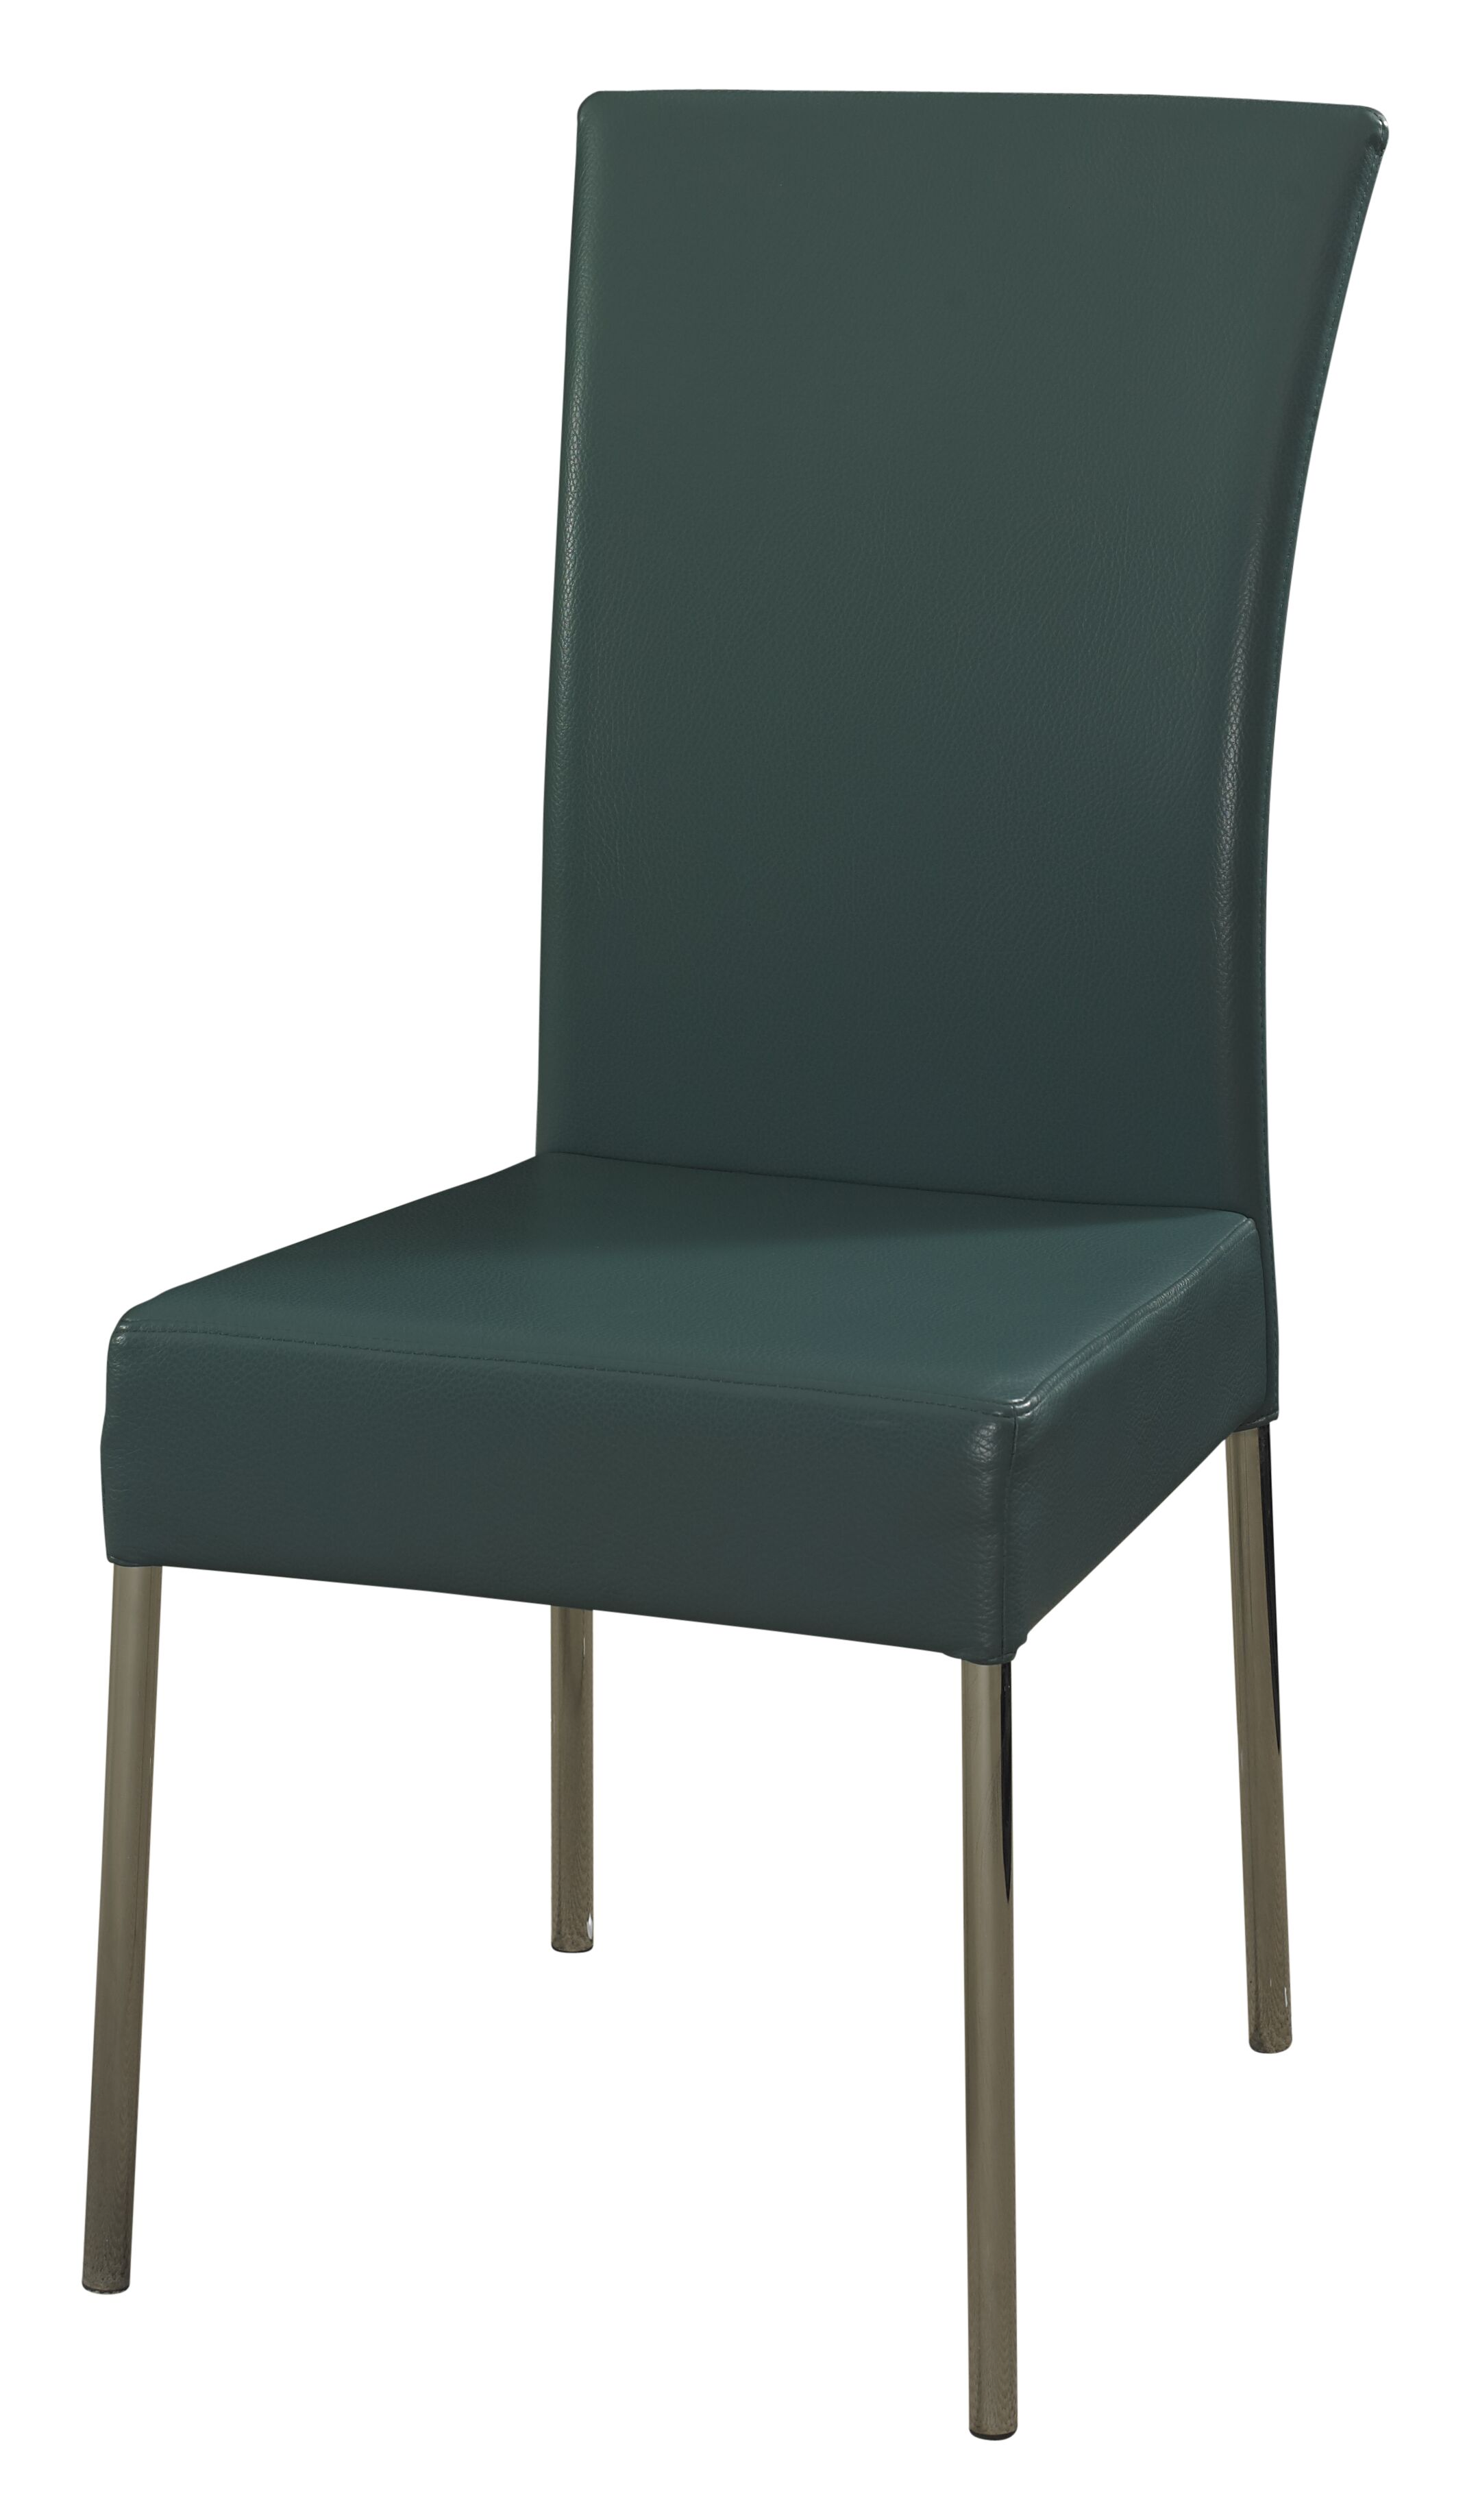 Upholstered Dining Chair Upholstery Color: Teal